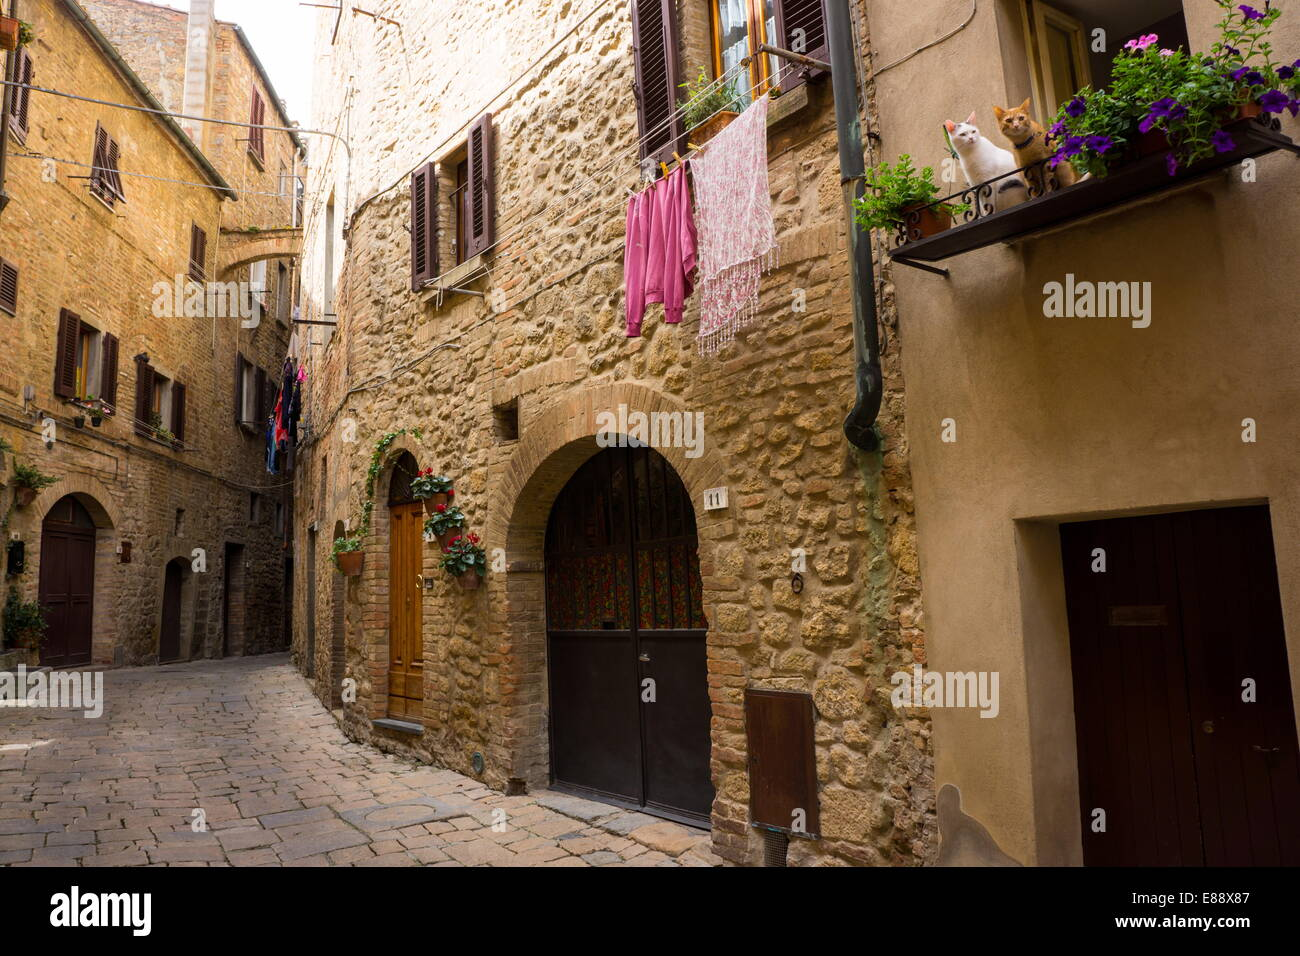 Street in old town, Volterra, Tuscany, Italy, Europe - Stock Image